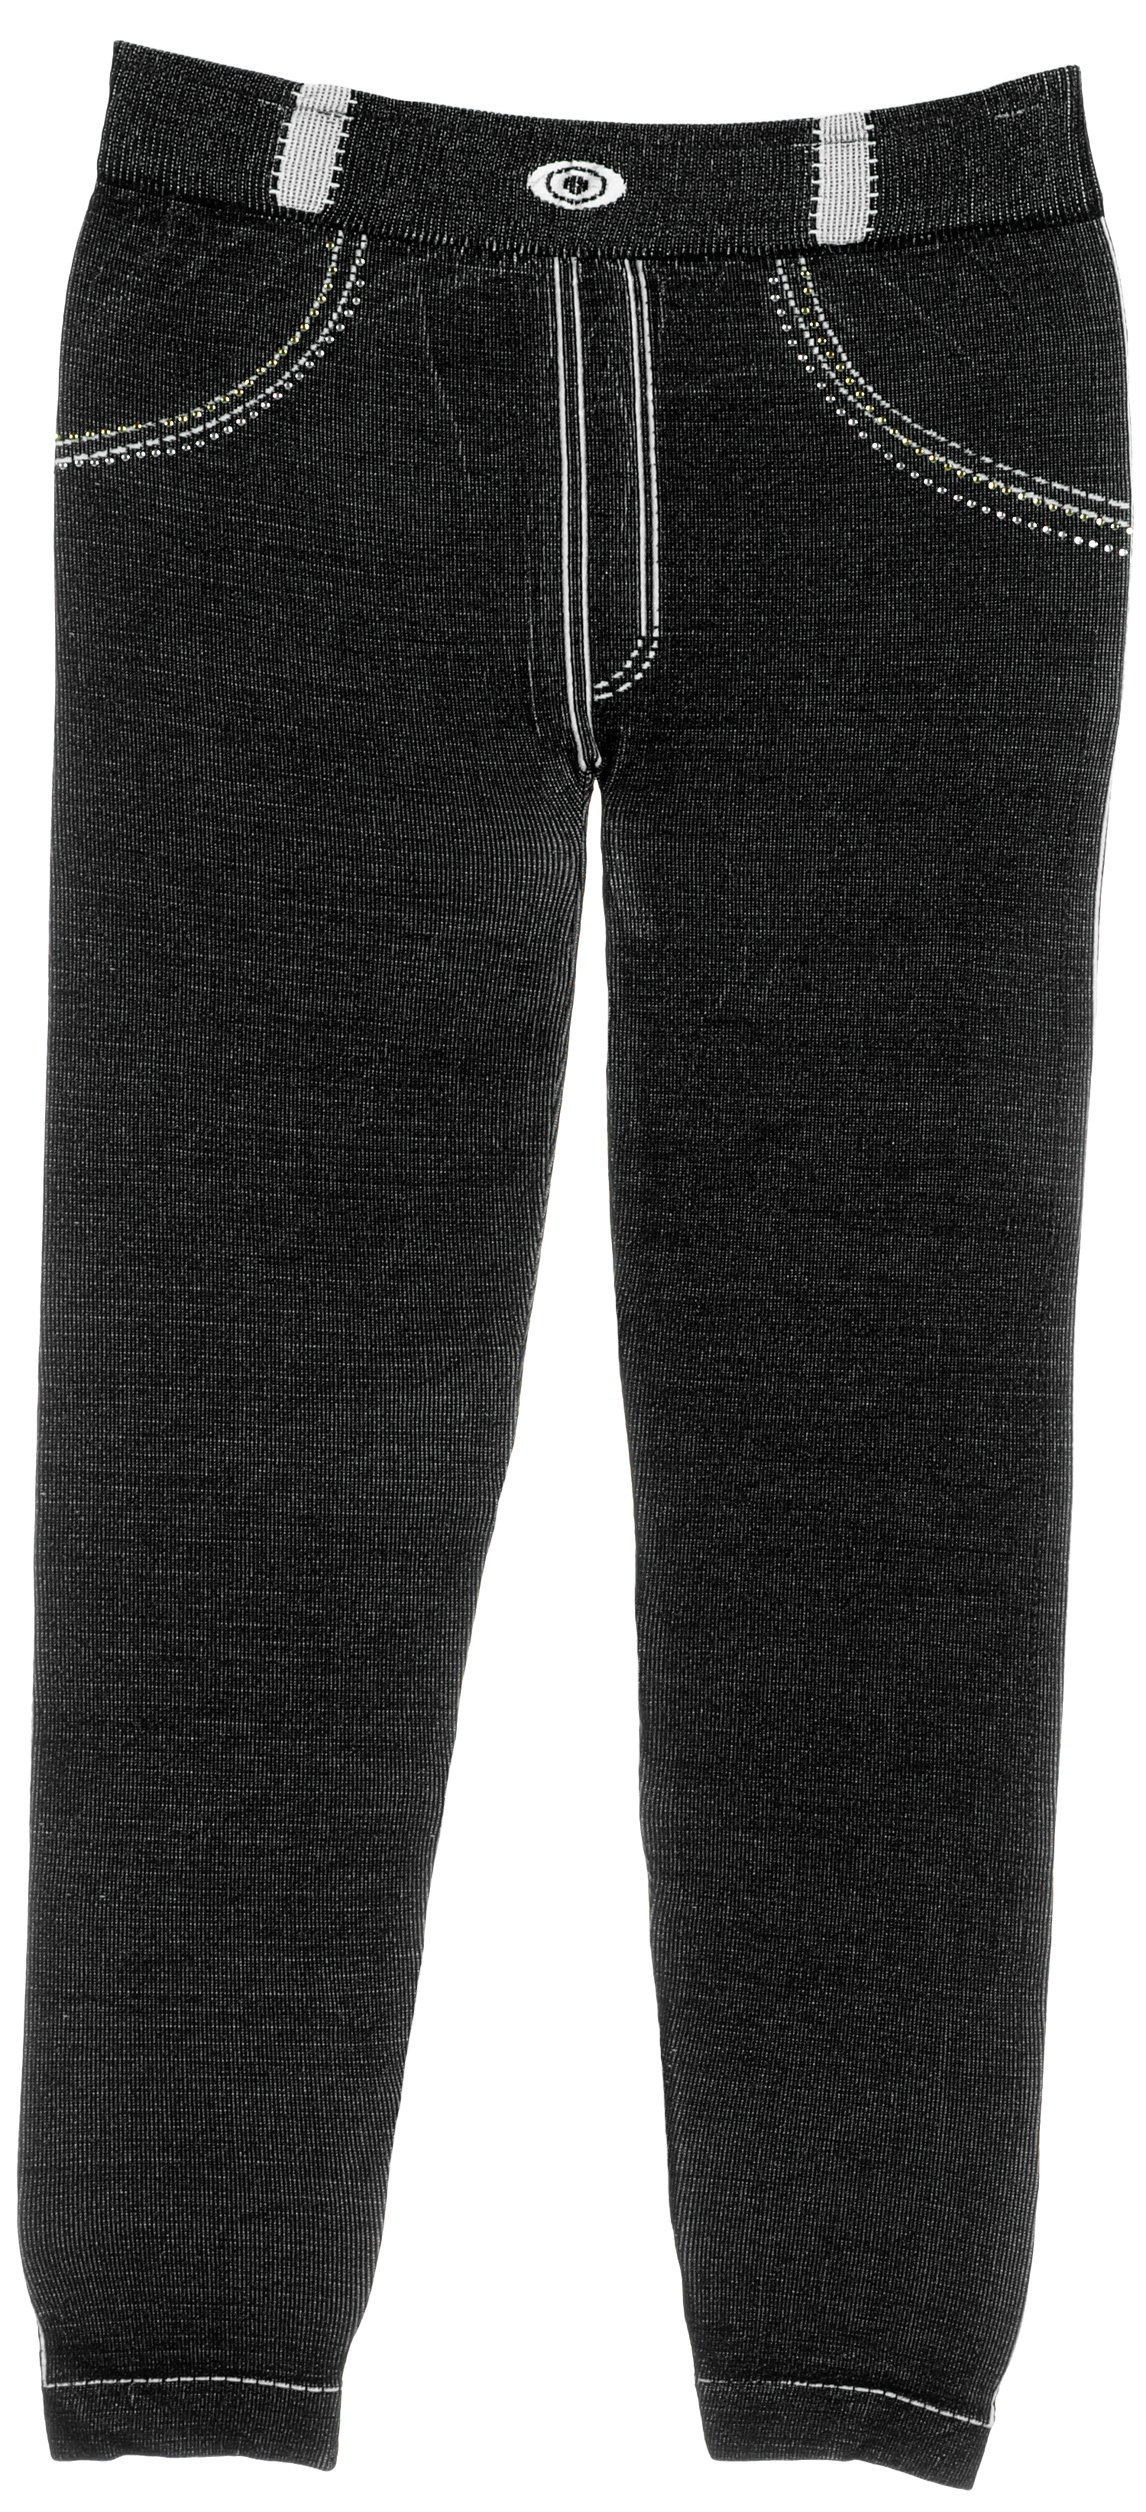 Girl's Stretch Fit Jeggings with Realistic Look & Texture in Black